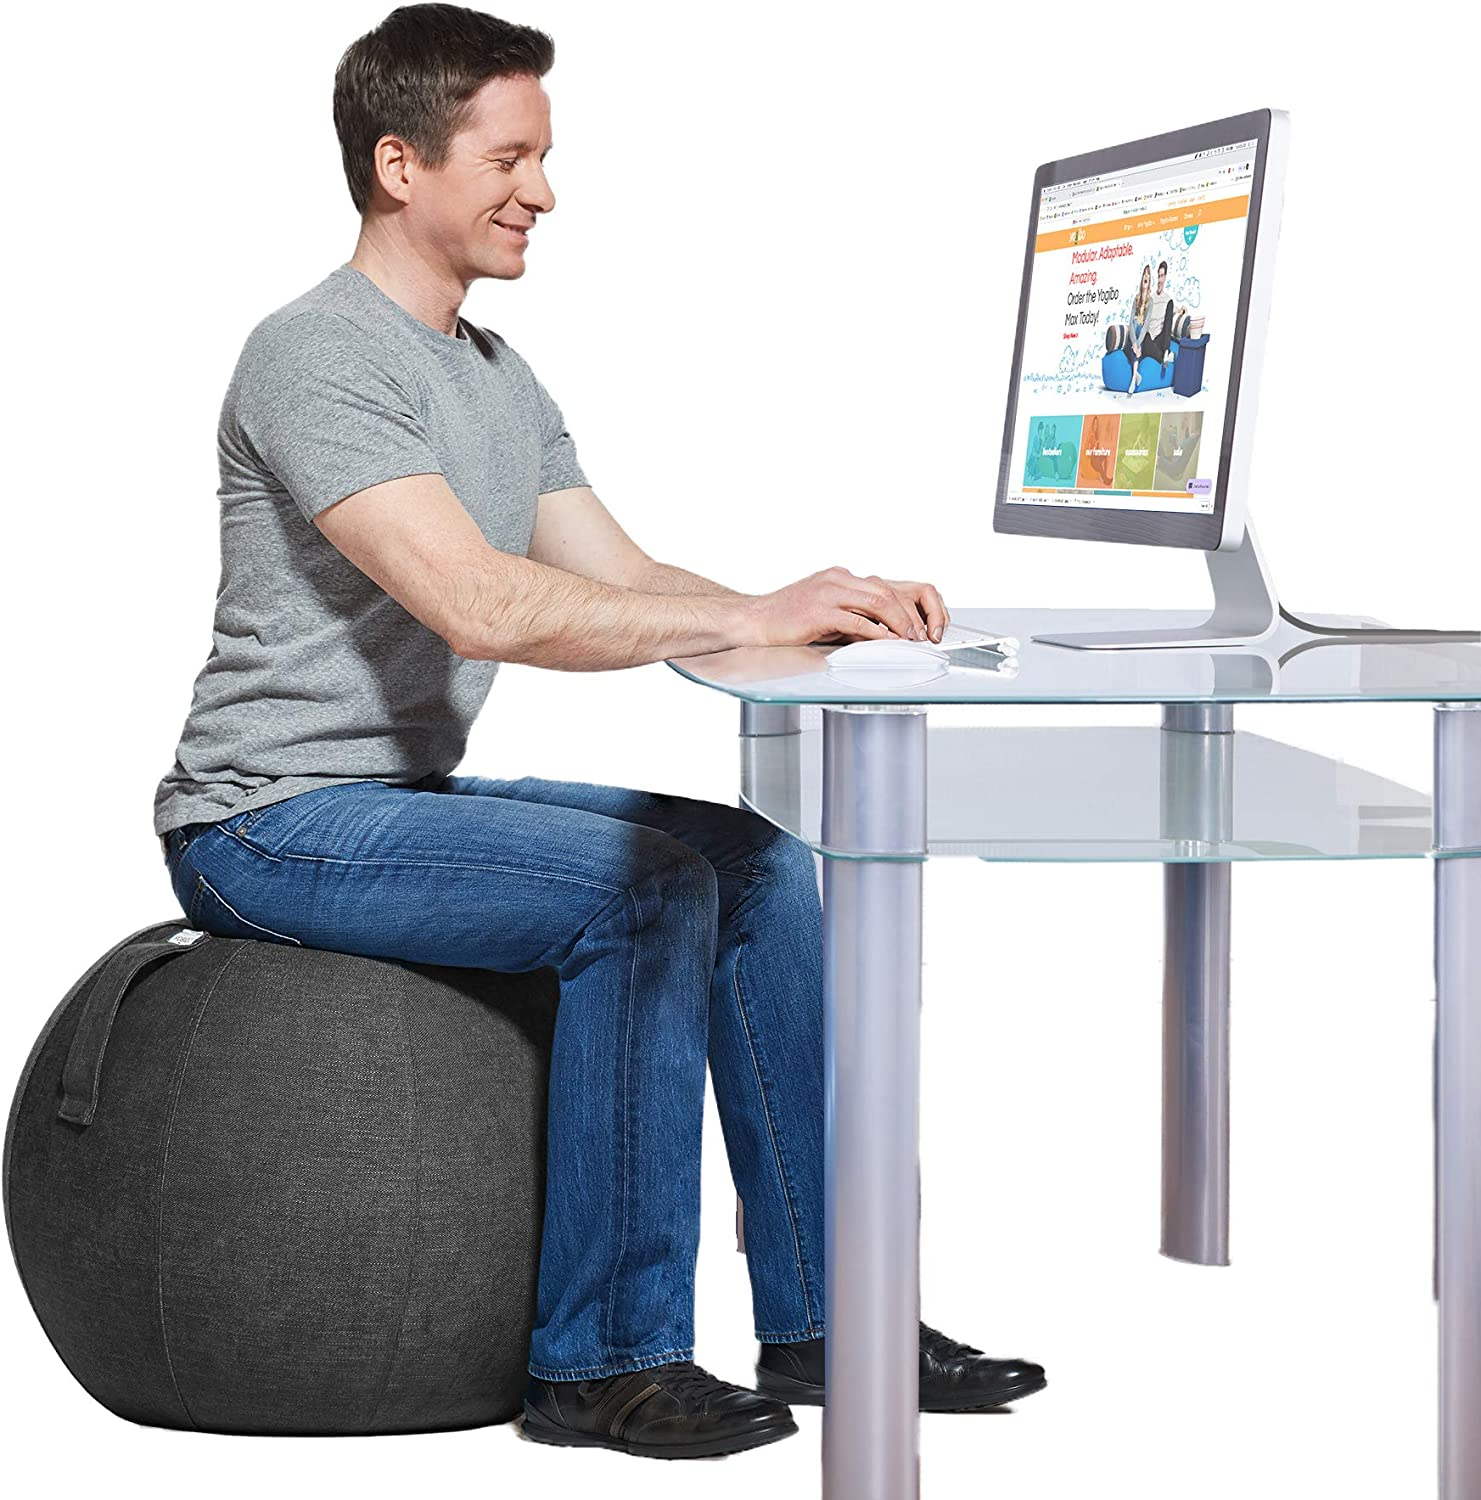 Amazon Com Yogibo Yogabo Ergonomic Balance Ball Chair For Home Desk Exercise Yoga Office Seat With Built In Base For Stability Grey Home Kitchen